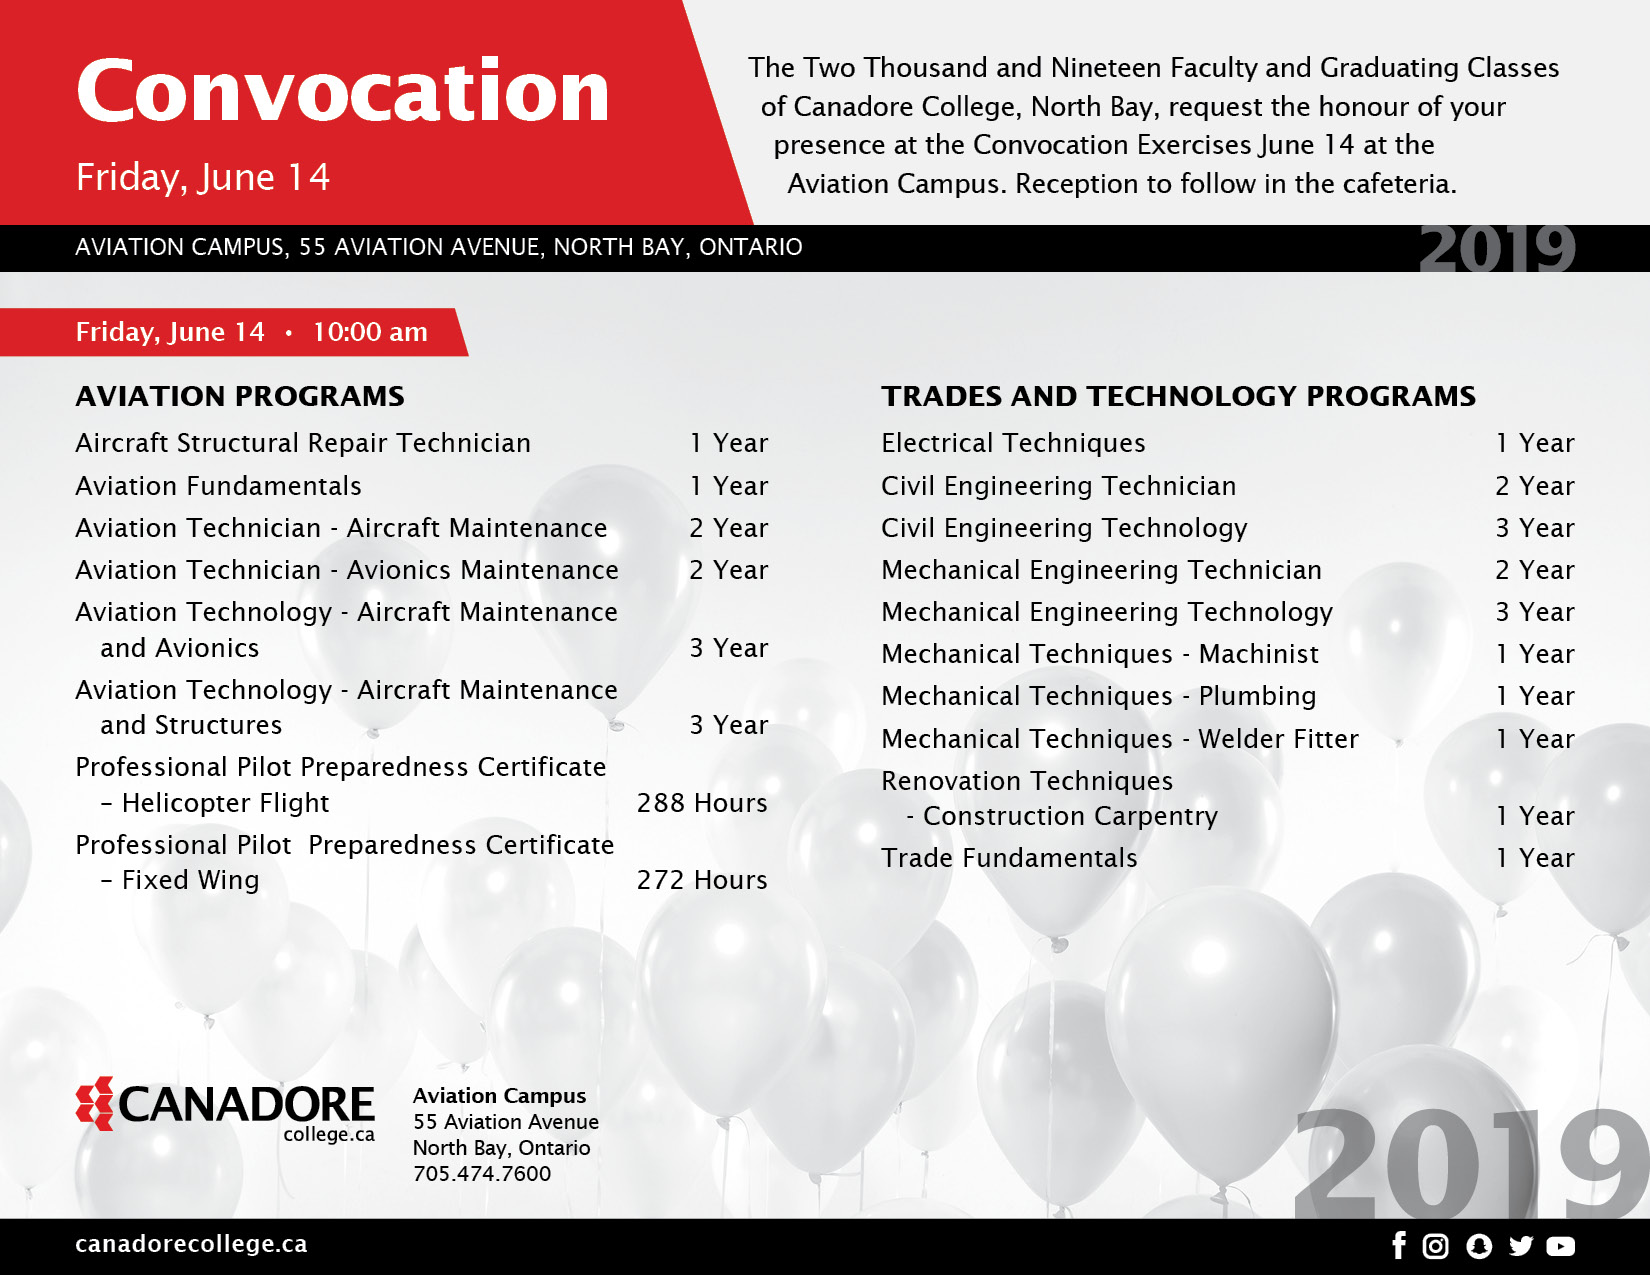 June 14 Convocation Invite